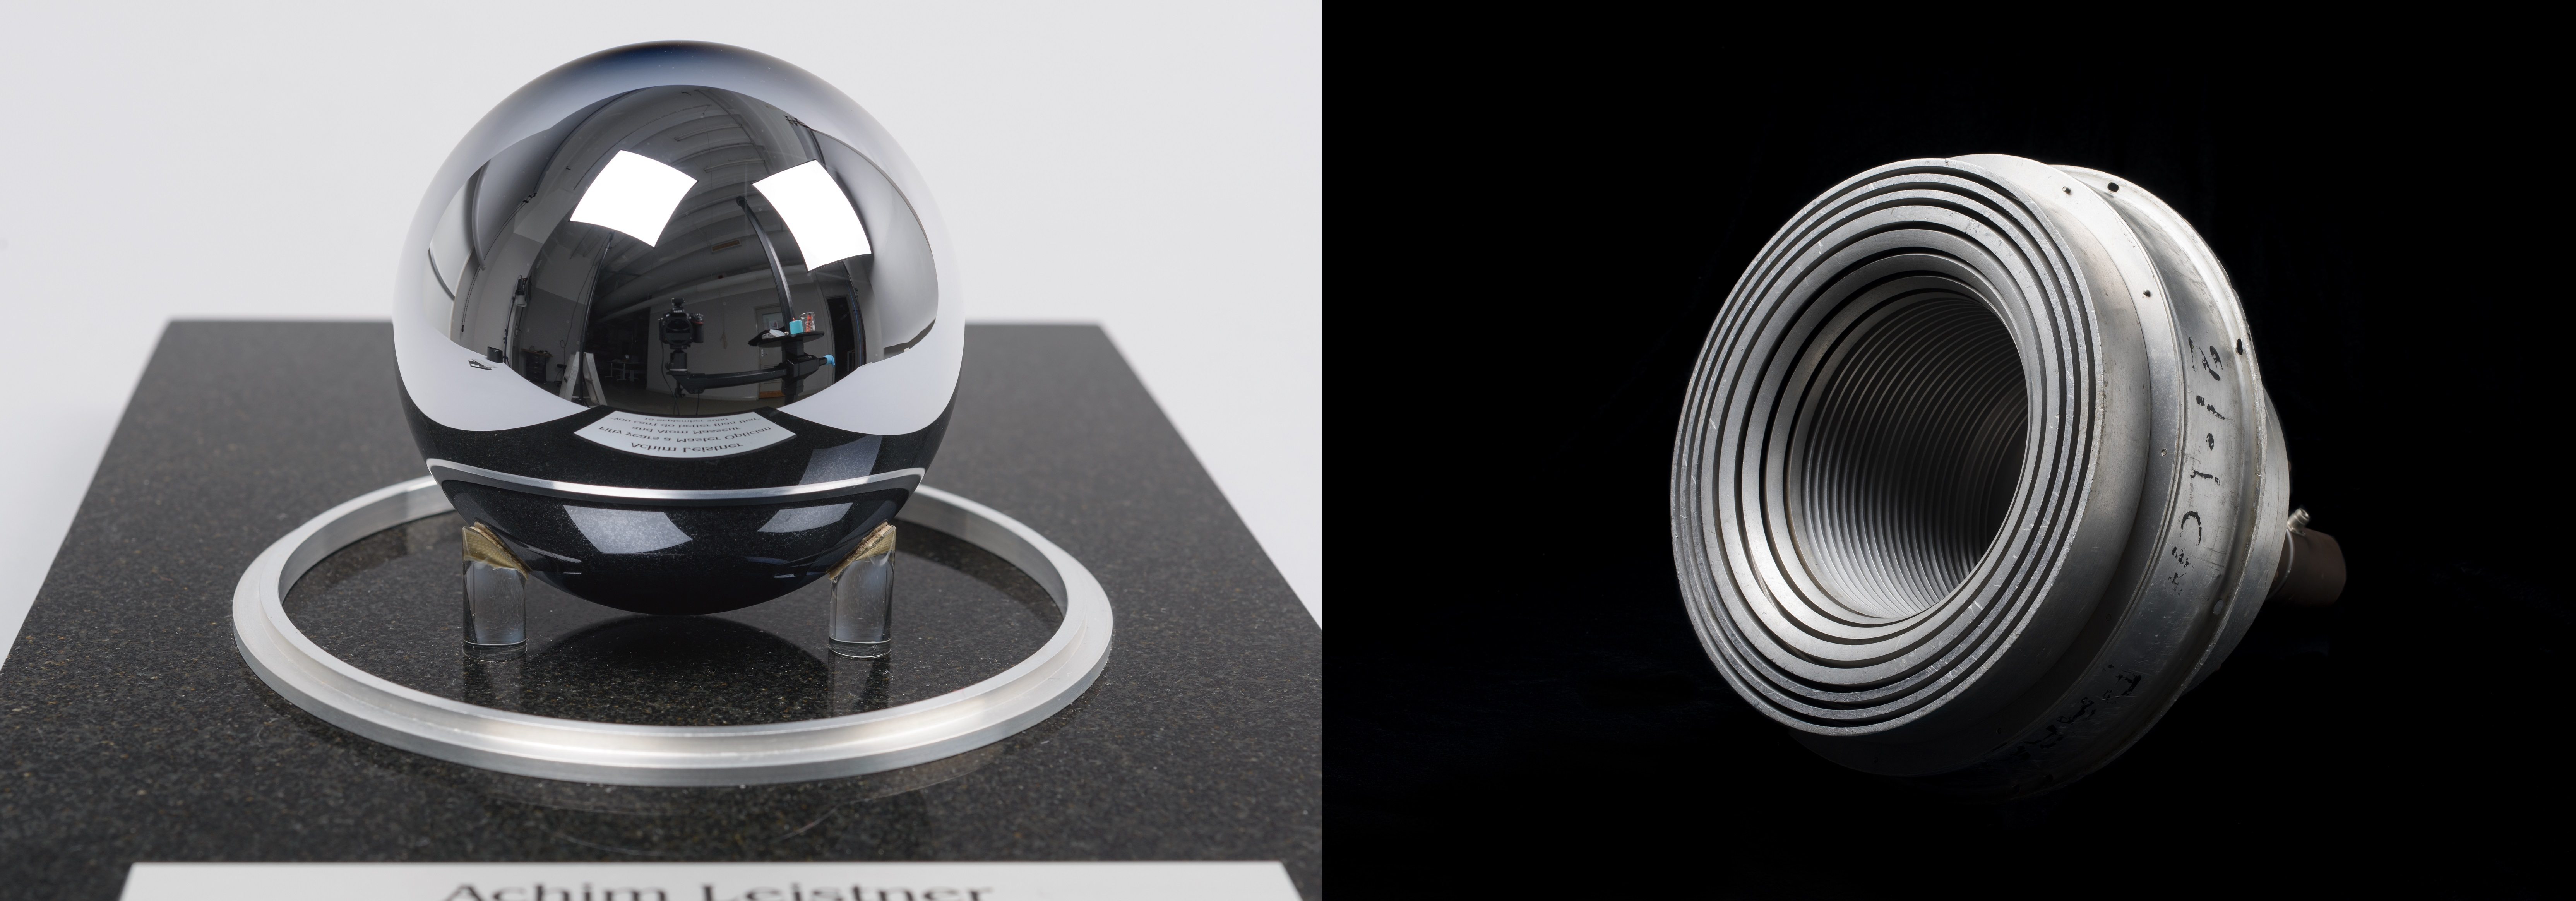 Two images side by side. Left: highly polished dark grey sphere on granite stand. Reflections of the lab in which the photograph was taken can be seen. Right: cylindrical metal device with several concentric rings of metal leading to a hollow interior.